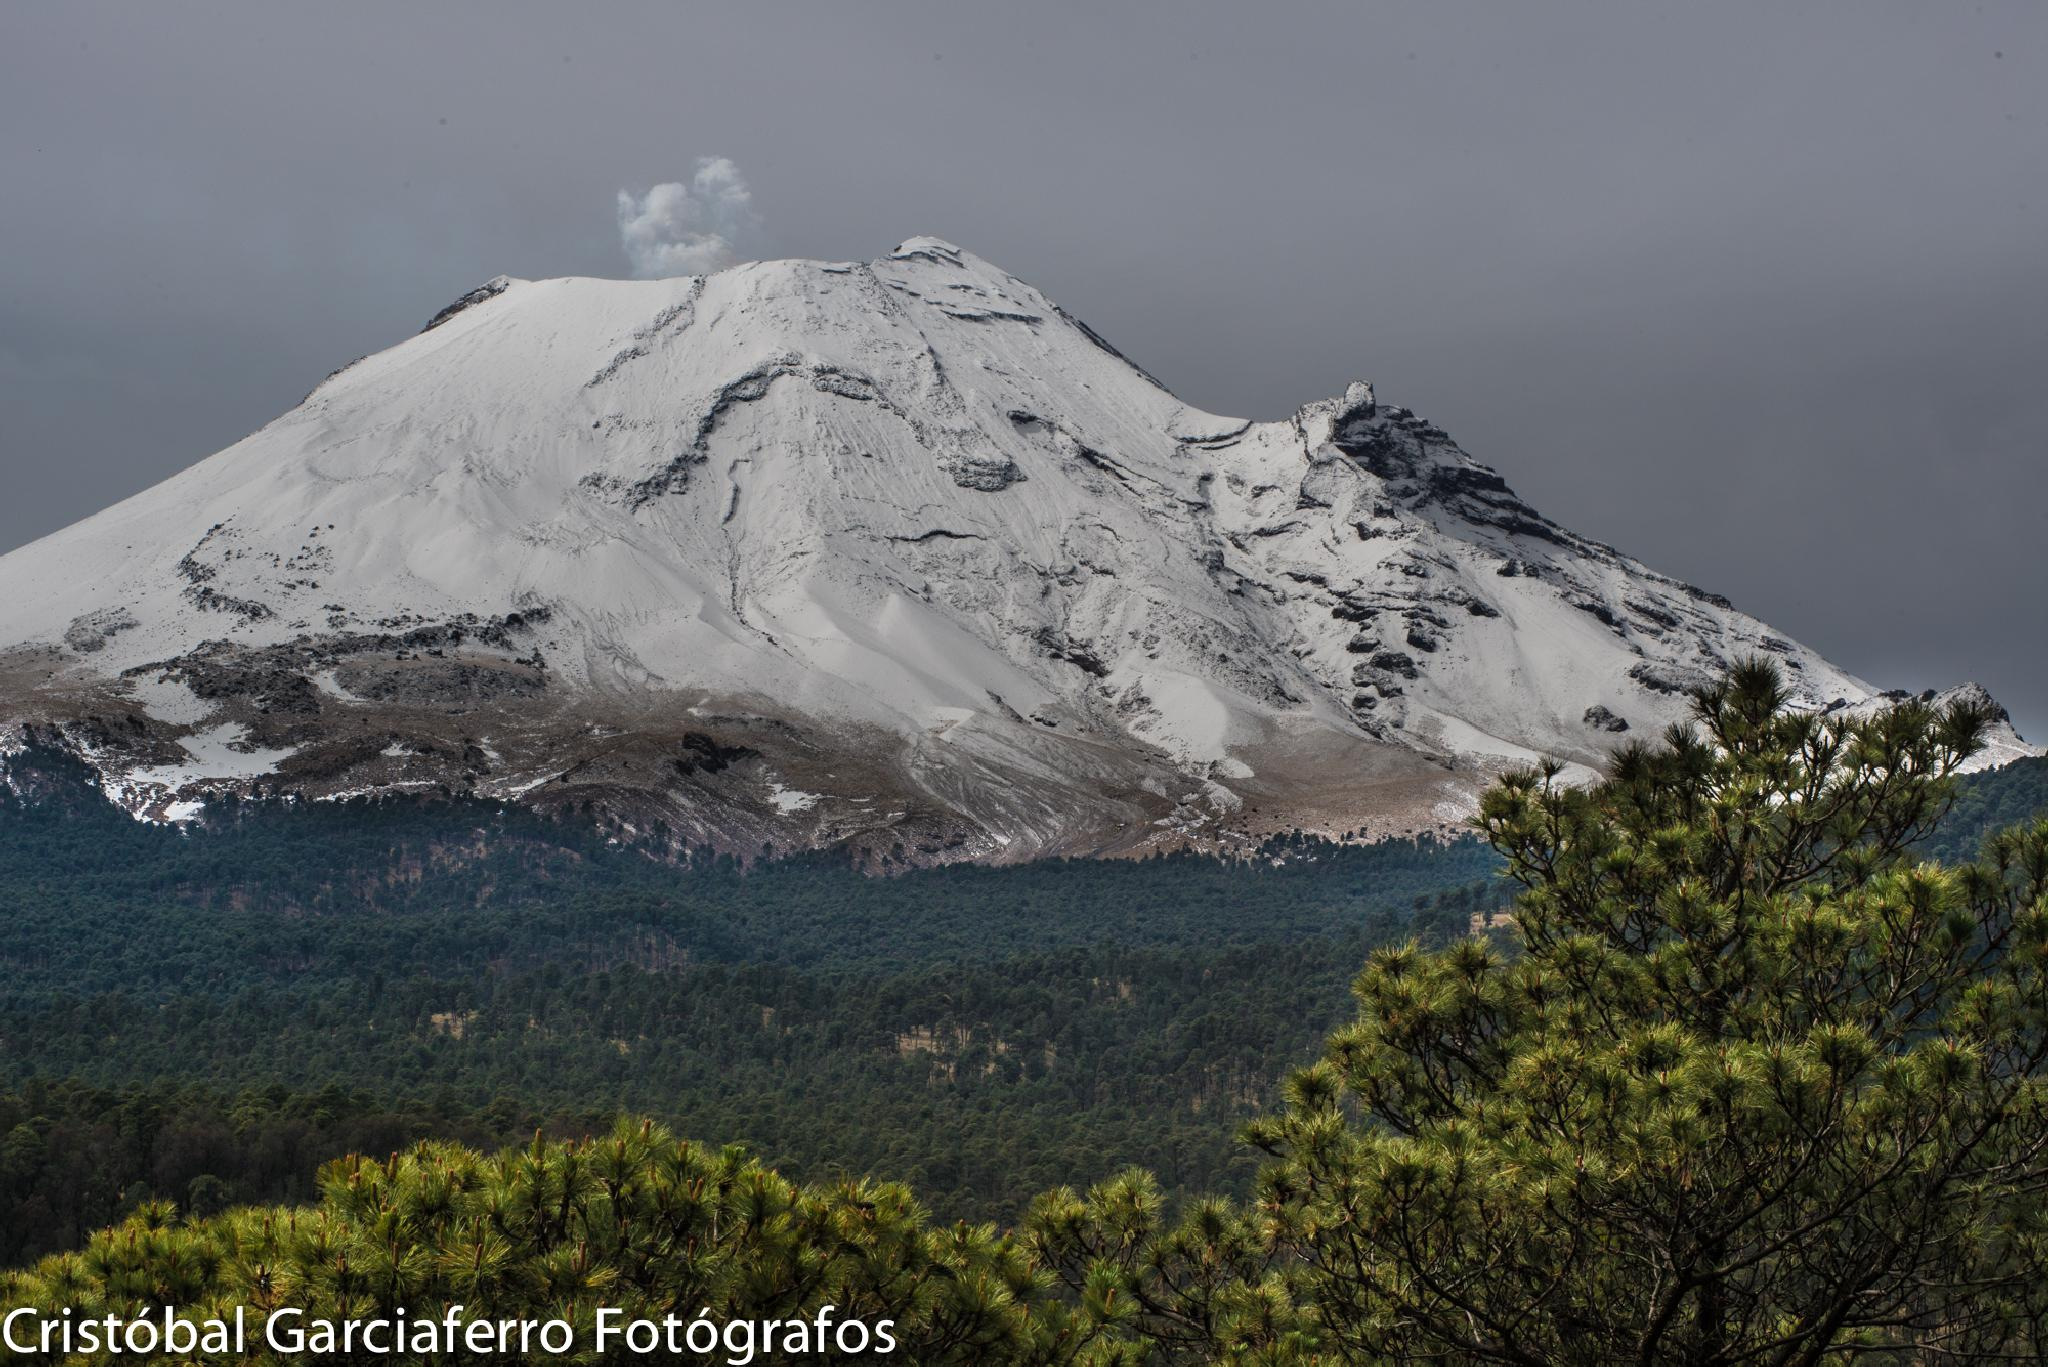 Another view from the Popocatepetl by cristobalgarciaferrorubio